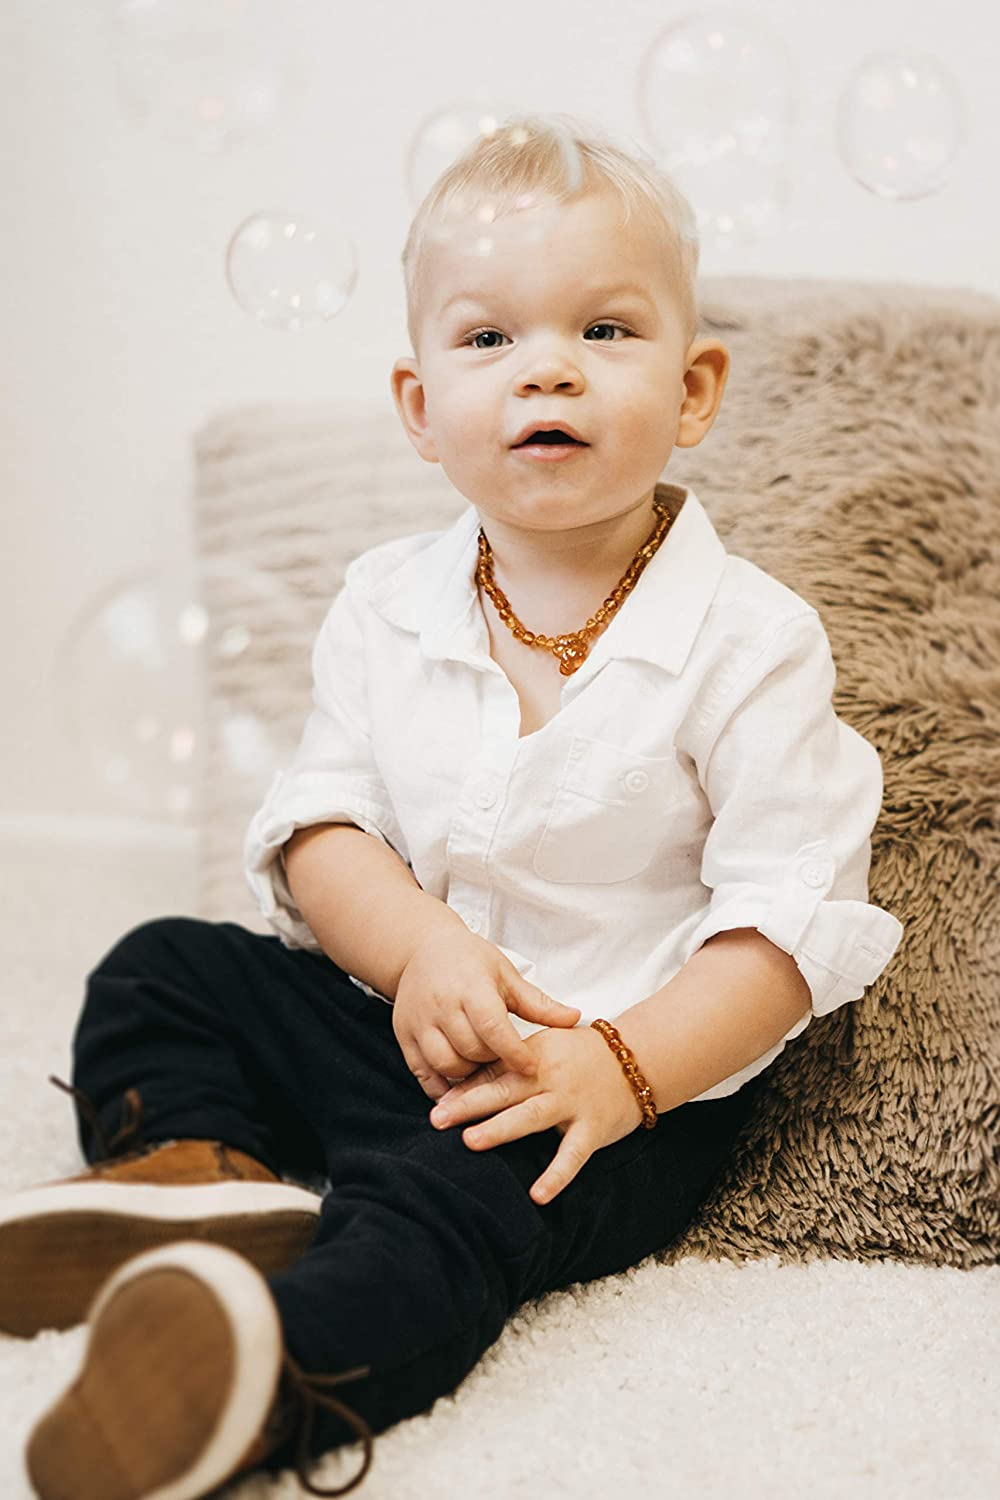 for Baby Amberito Baltic Amber Teething Necklace for Babies Greenish Natural Anti-Inflammatory Amber Beads| Holistic Jewelry and Drooling Support Toddler Girl and Boys Quick Fasten Easy-Clasp